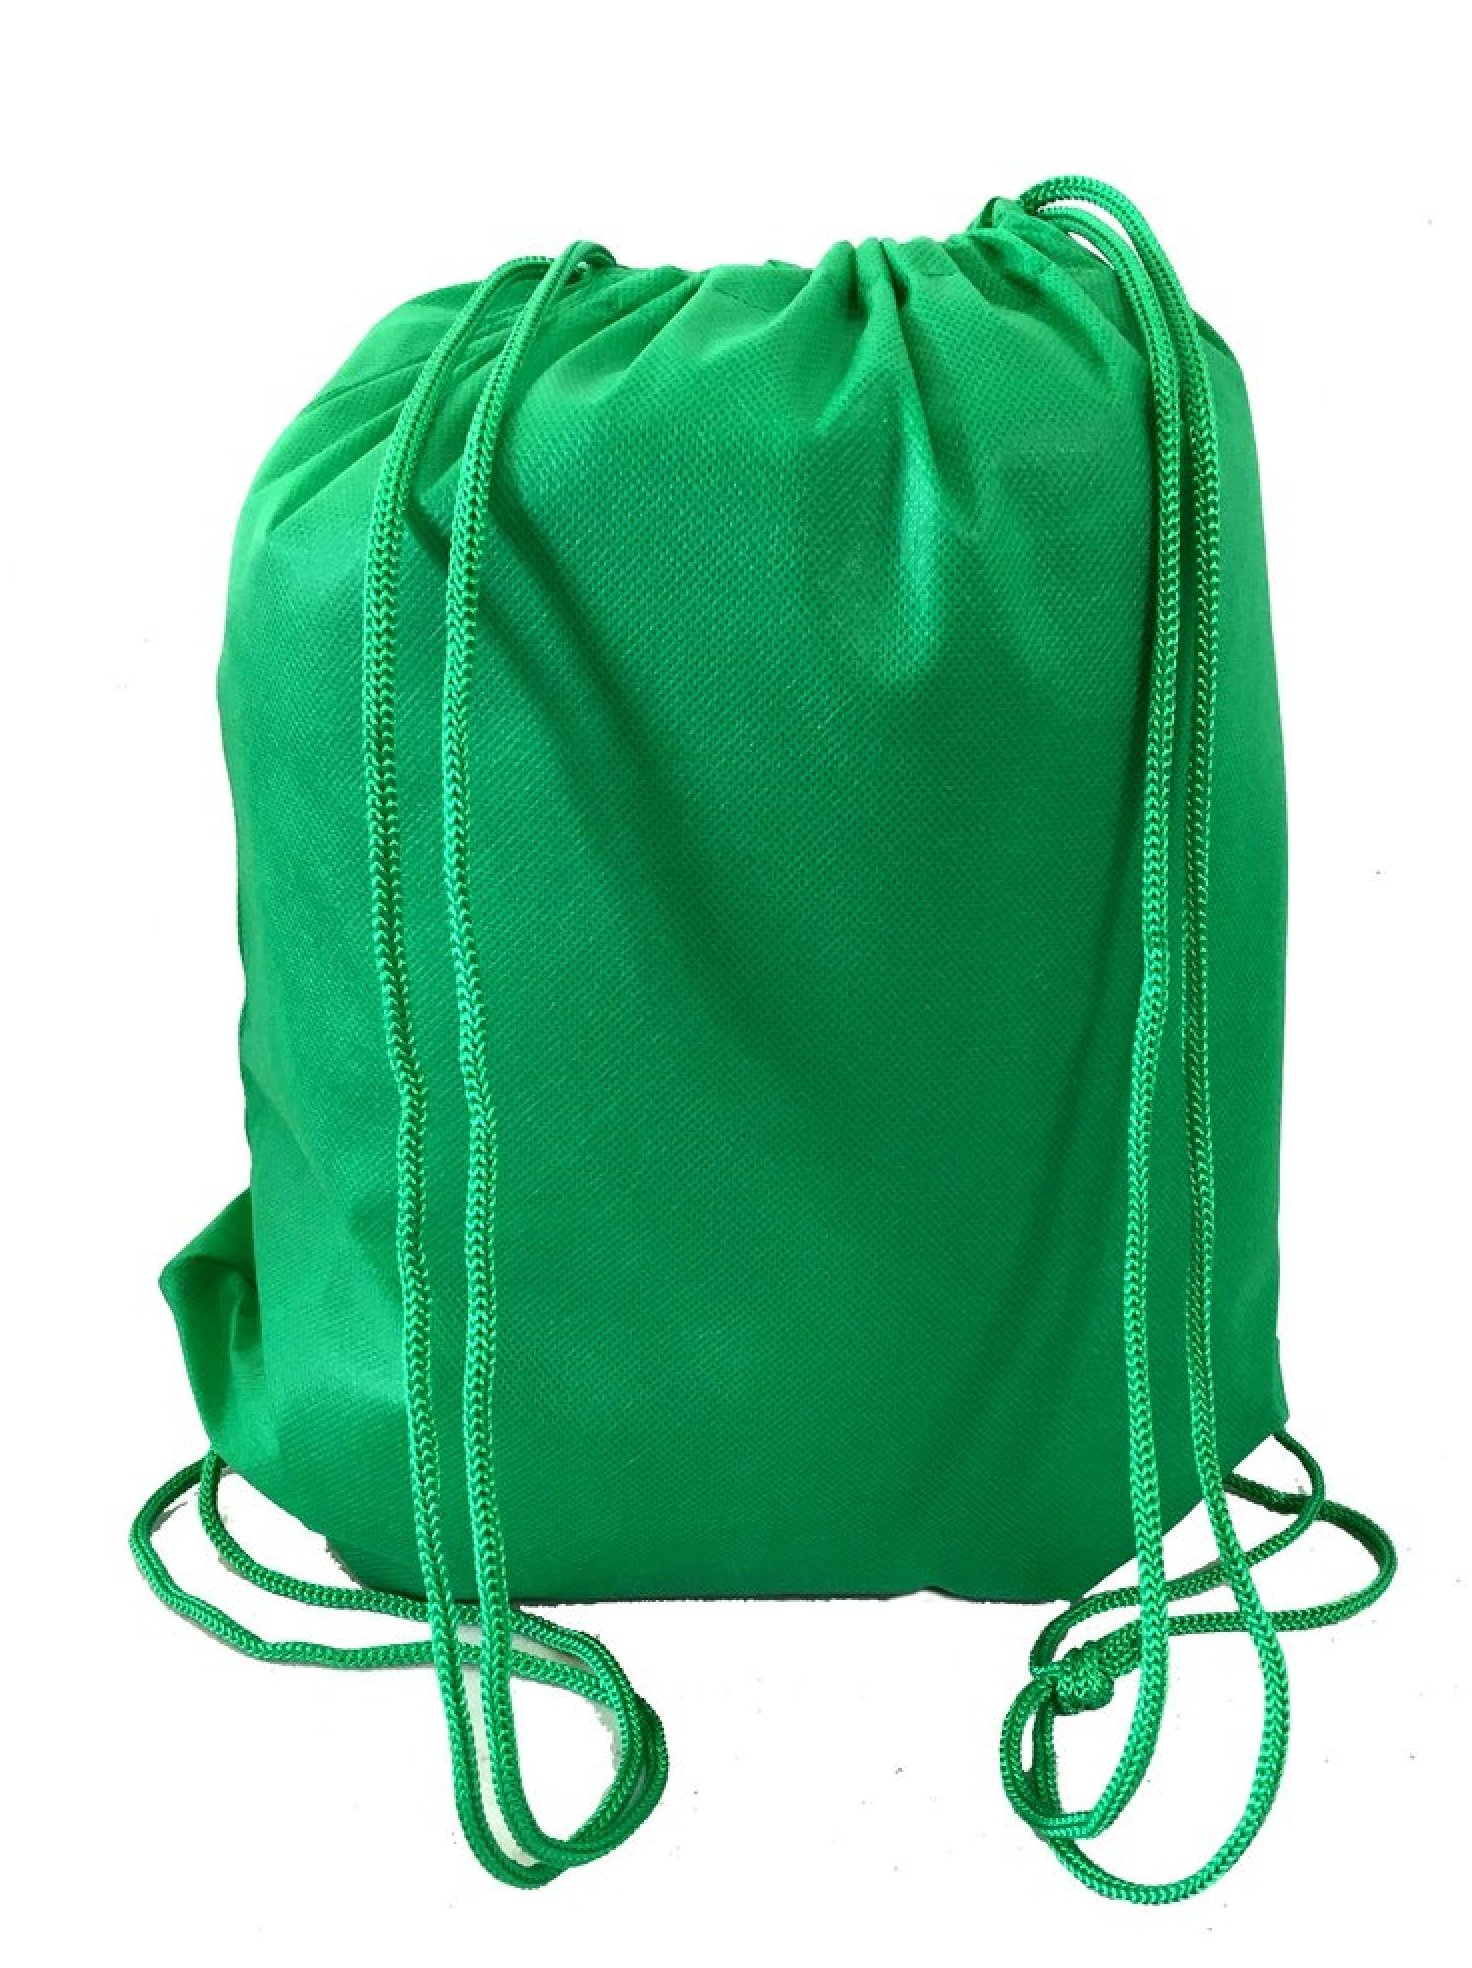 Super Value Pack- 200 Pack Mix Color Drawstring Bags, Small Size Junior Cinch Packs, Non-Woven Backpack (Kelly Green) by Georgiabags (Image #1)